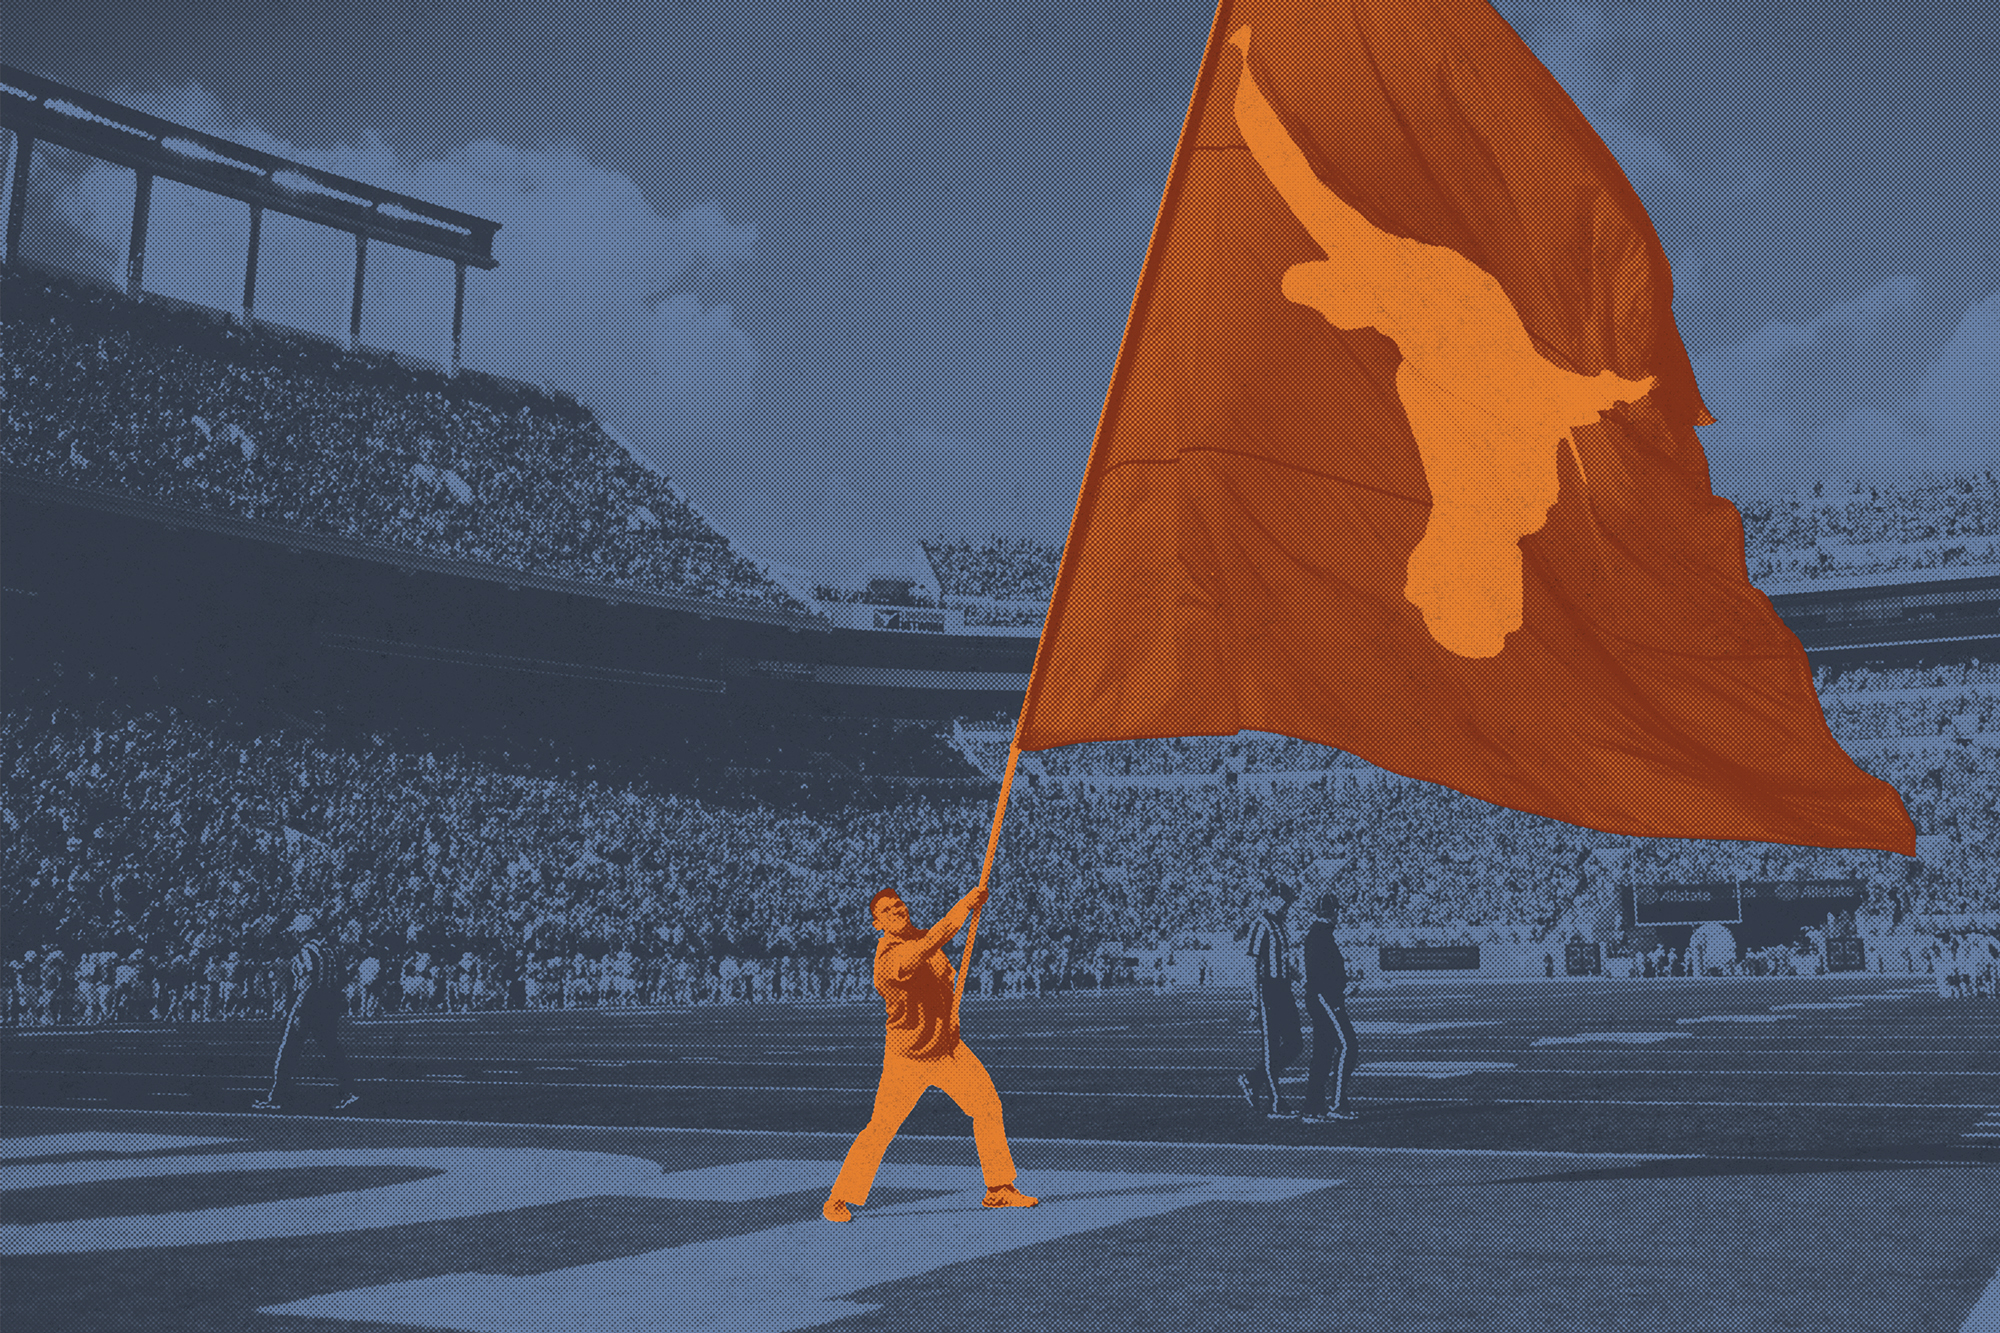 Waving the Longhorn flag